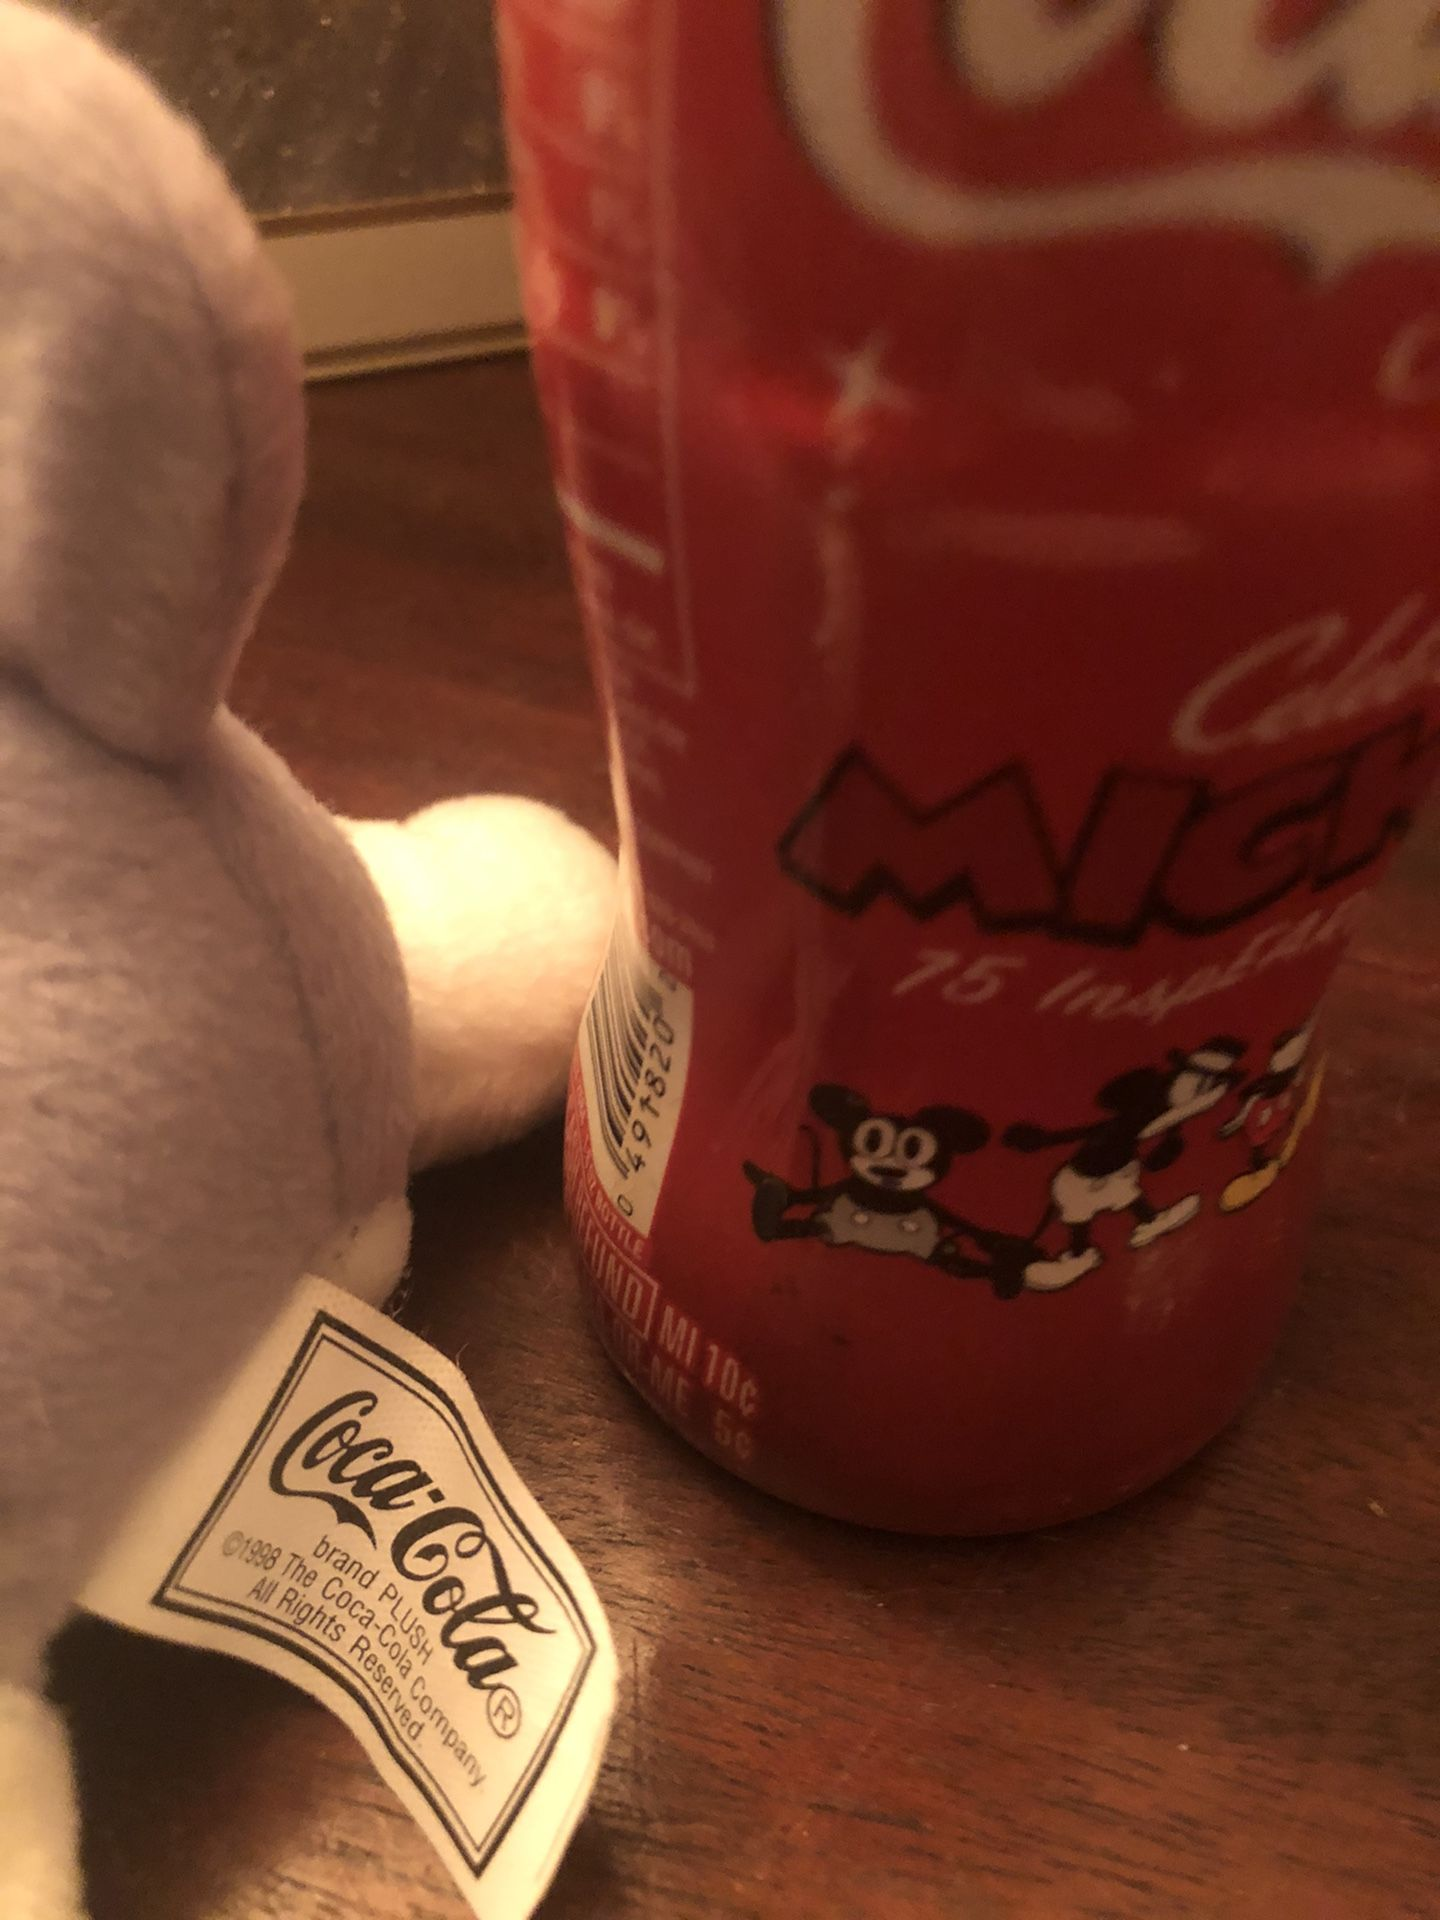 Vintage 1998 Coca Cola husky Plush & New/ Never Opened 75th Mickey Anniversary 8 Oz Bottle- Good Condition - See Pics! Good Deal!